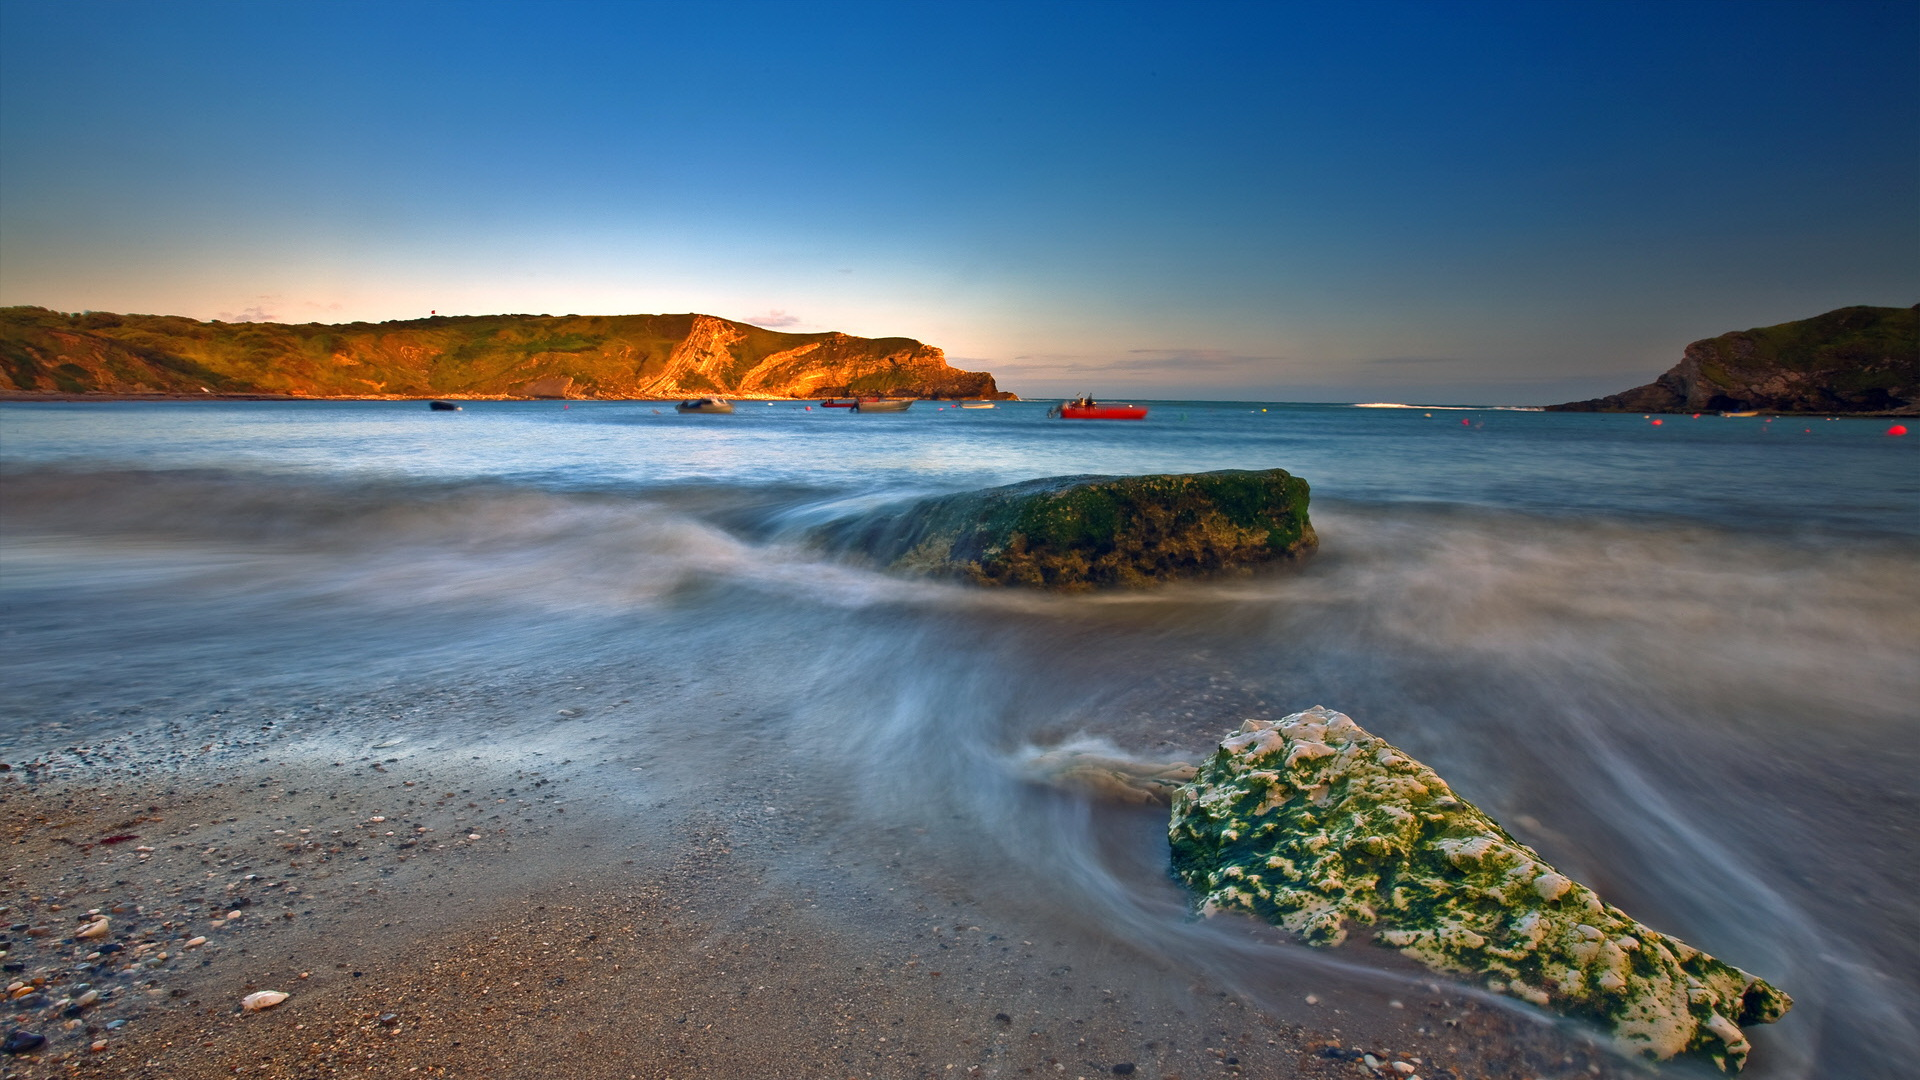 Free Download Natural Scenery Picture The Sea With Misty